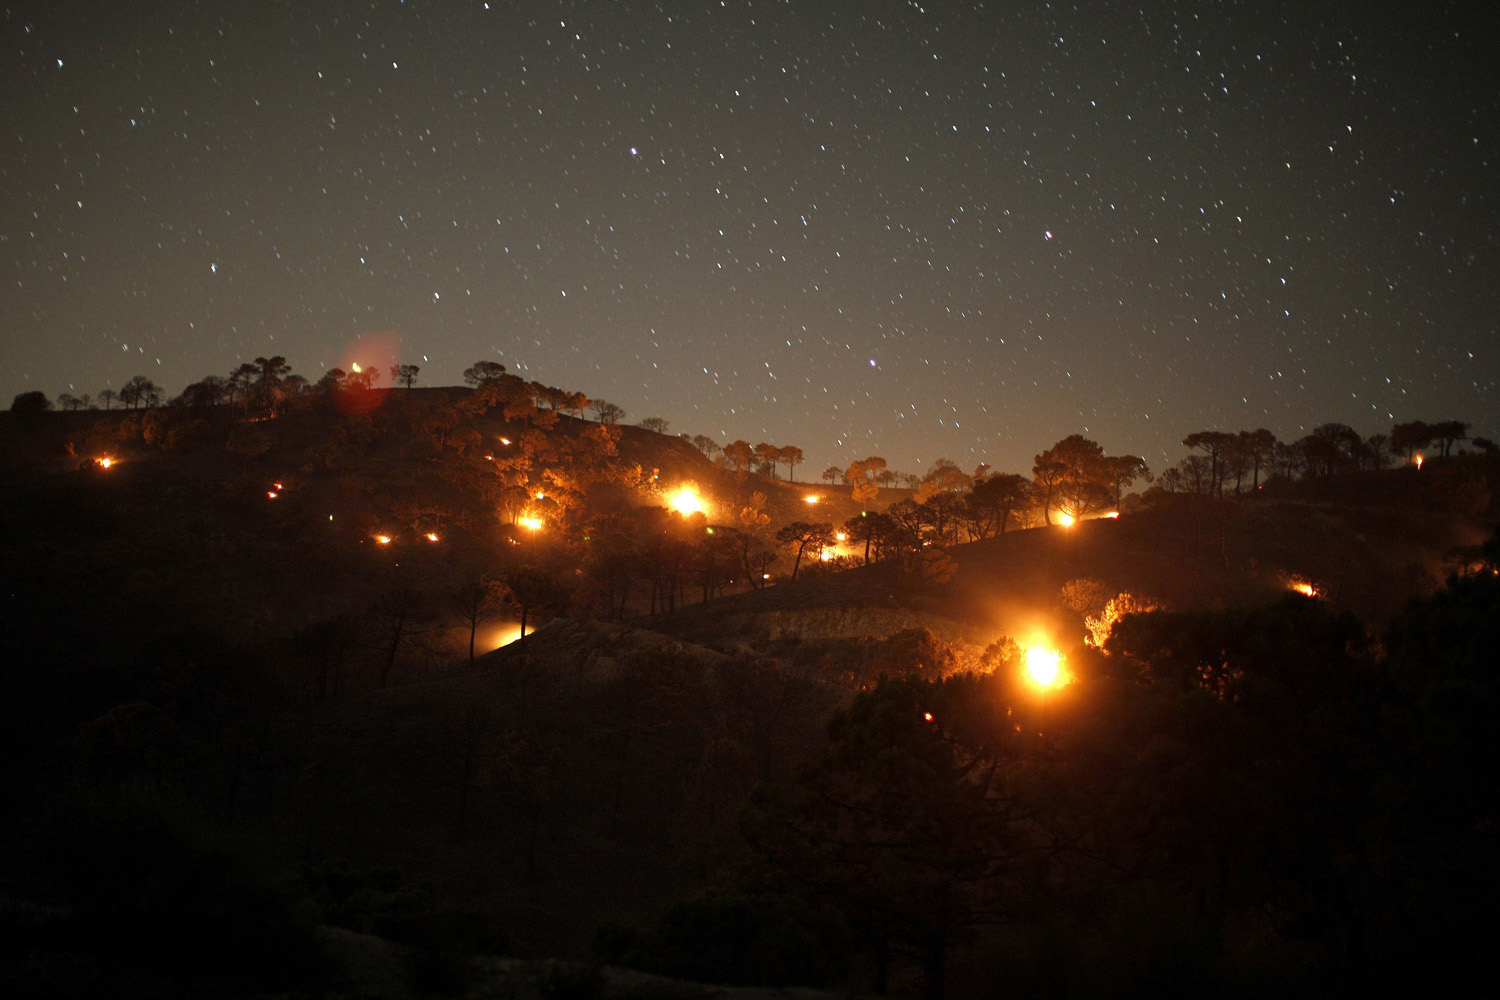 Jun. 30, 2014. Small forest fires are pictured between pine trees at night at Sierra de Tejeda nature park, on a burnt mountain from El Collado mountain pass, near the town of Competa, near Malaga, southern Spain.